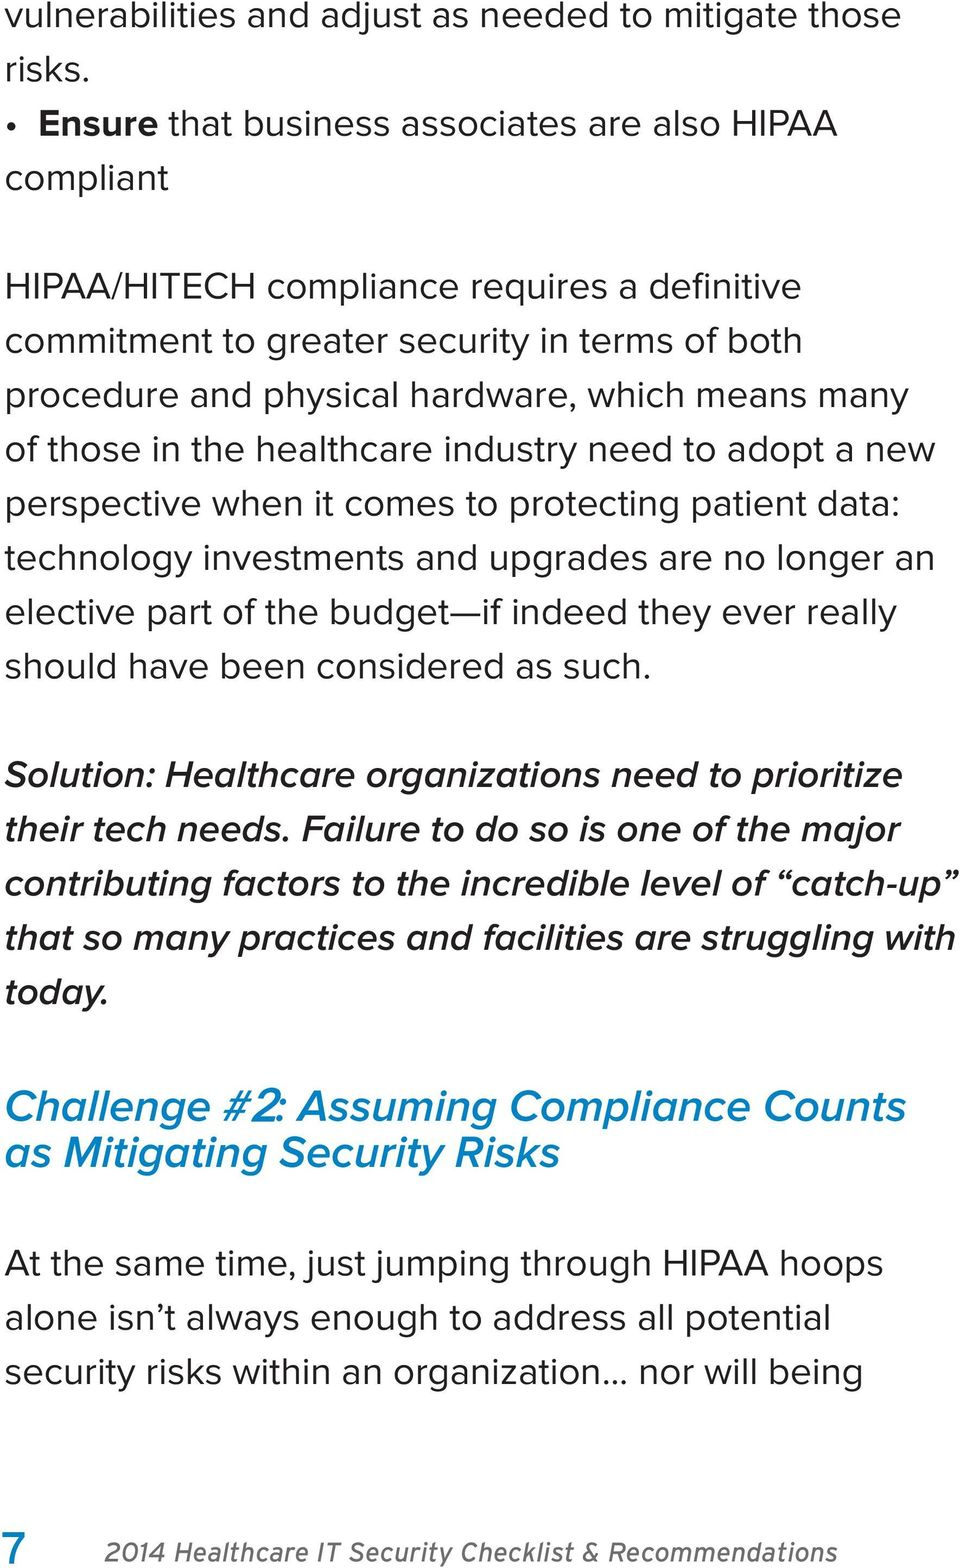 many of those in the healthcare industry need to adopt a new perspective when it comes to protecting patient data: technology investments and upgrades are no longer an elective part of the budget if